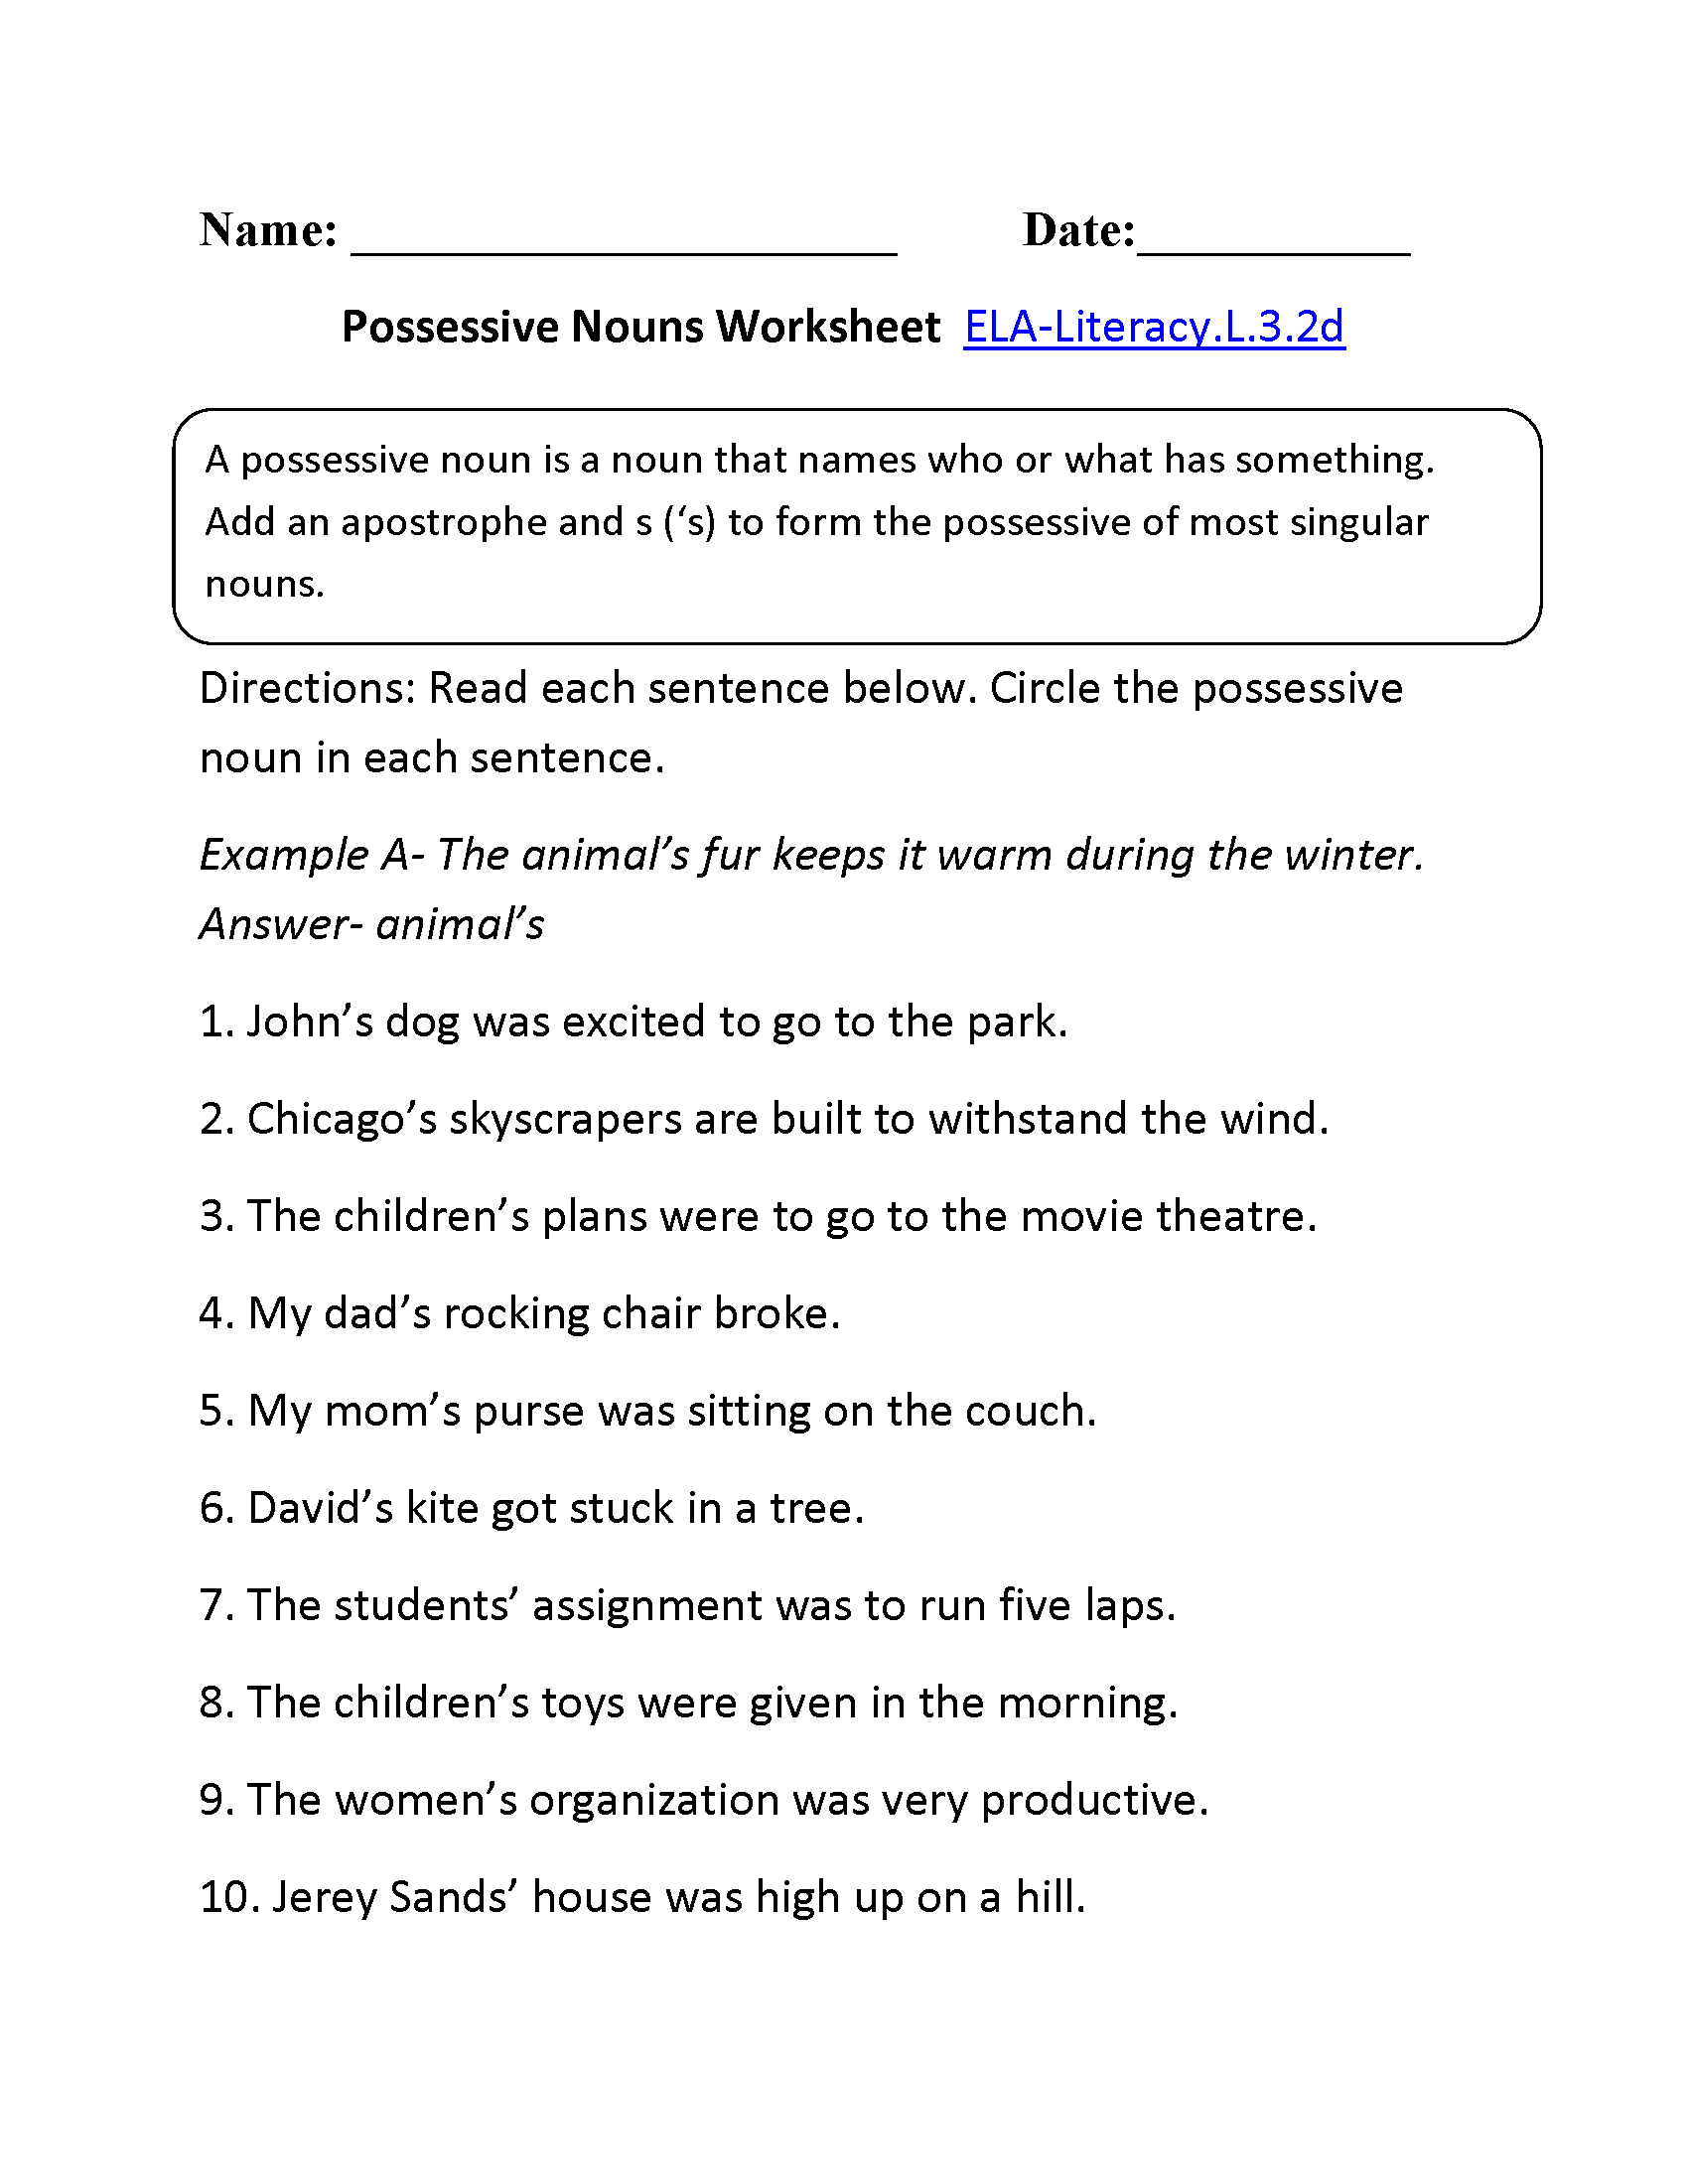 medium resolution of Possessive Nouns Worksheet 1 ELA-Literacy.L.3.2d Language Worksheet   Nouns  worksheet